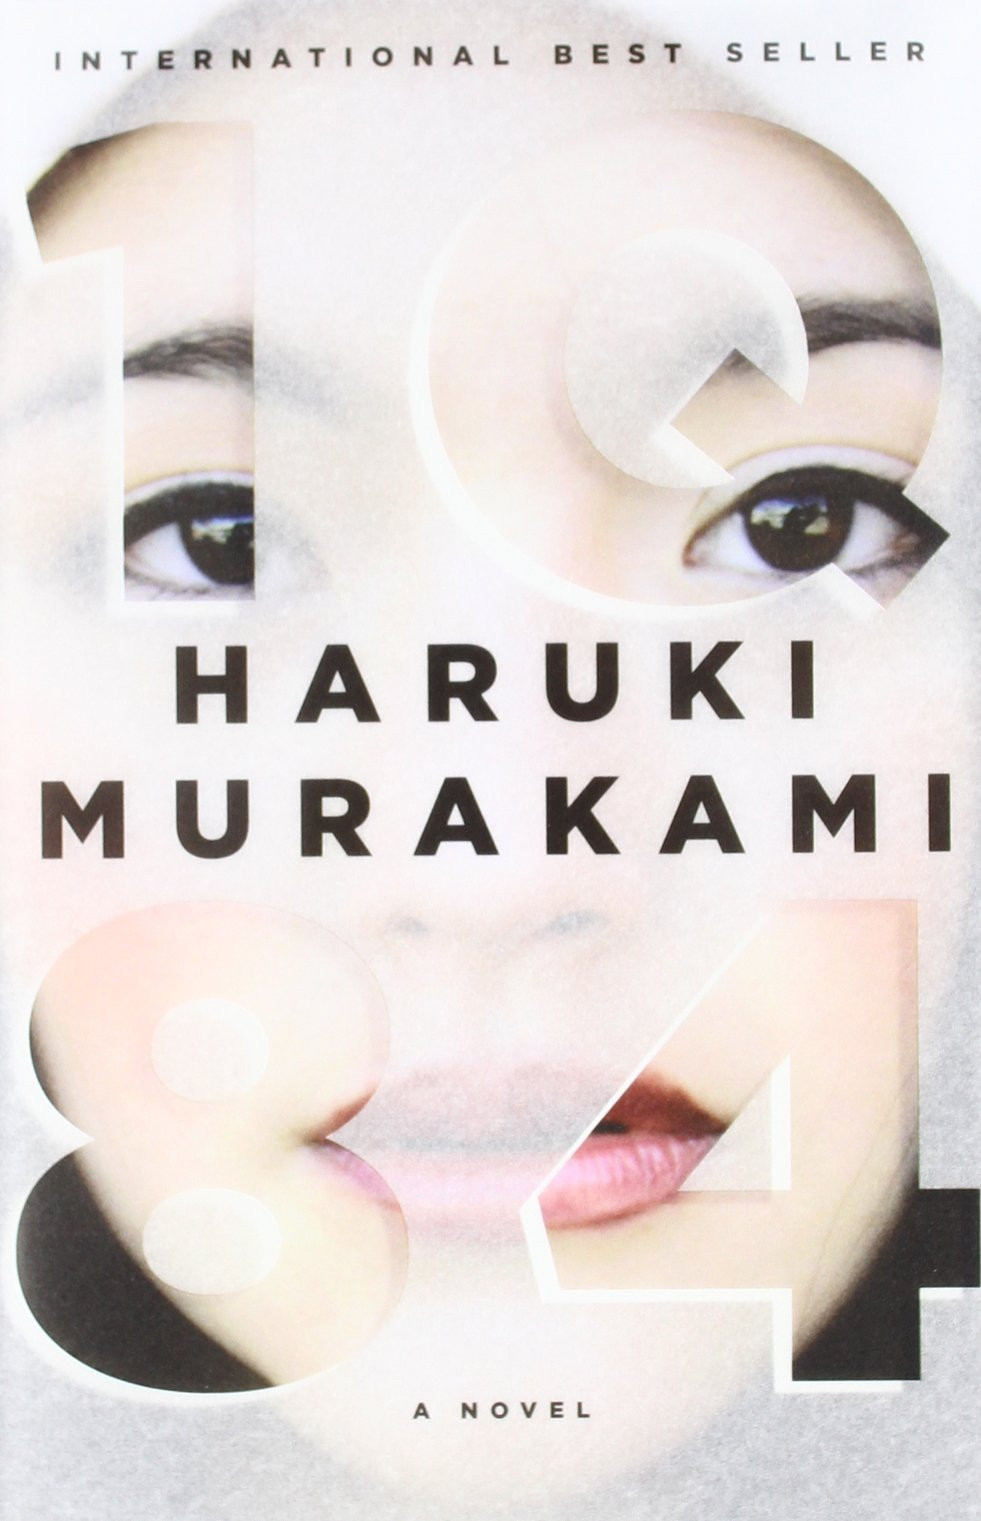 howl magazine, book picks, recommend, julia de la torre, new york, literature, haruki murakami